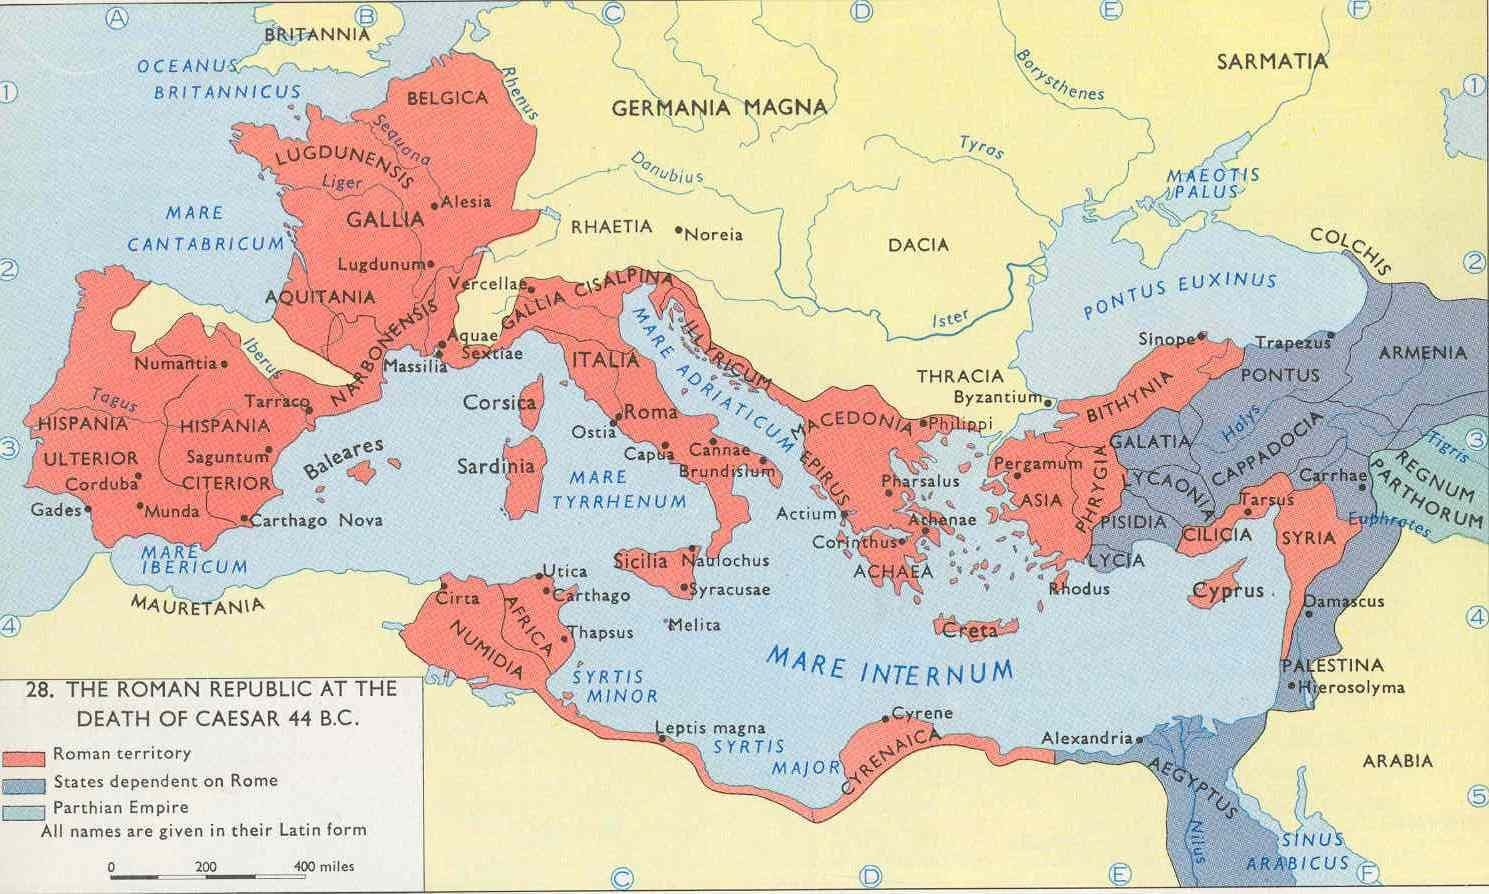 an examination of the assassination of julius caesar in 44 bc Law of caesar on municipalities, 44 bc forward before his death julius  caesar was engaged in composing regulations for the distribution of  if the  owner on whom this assessment has been imposed, or his agent, does not pay  this.